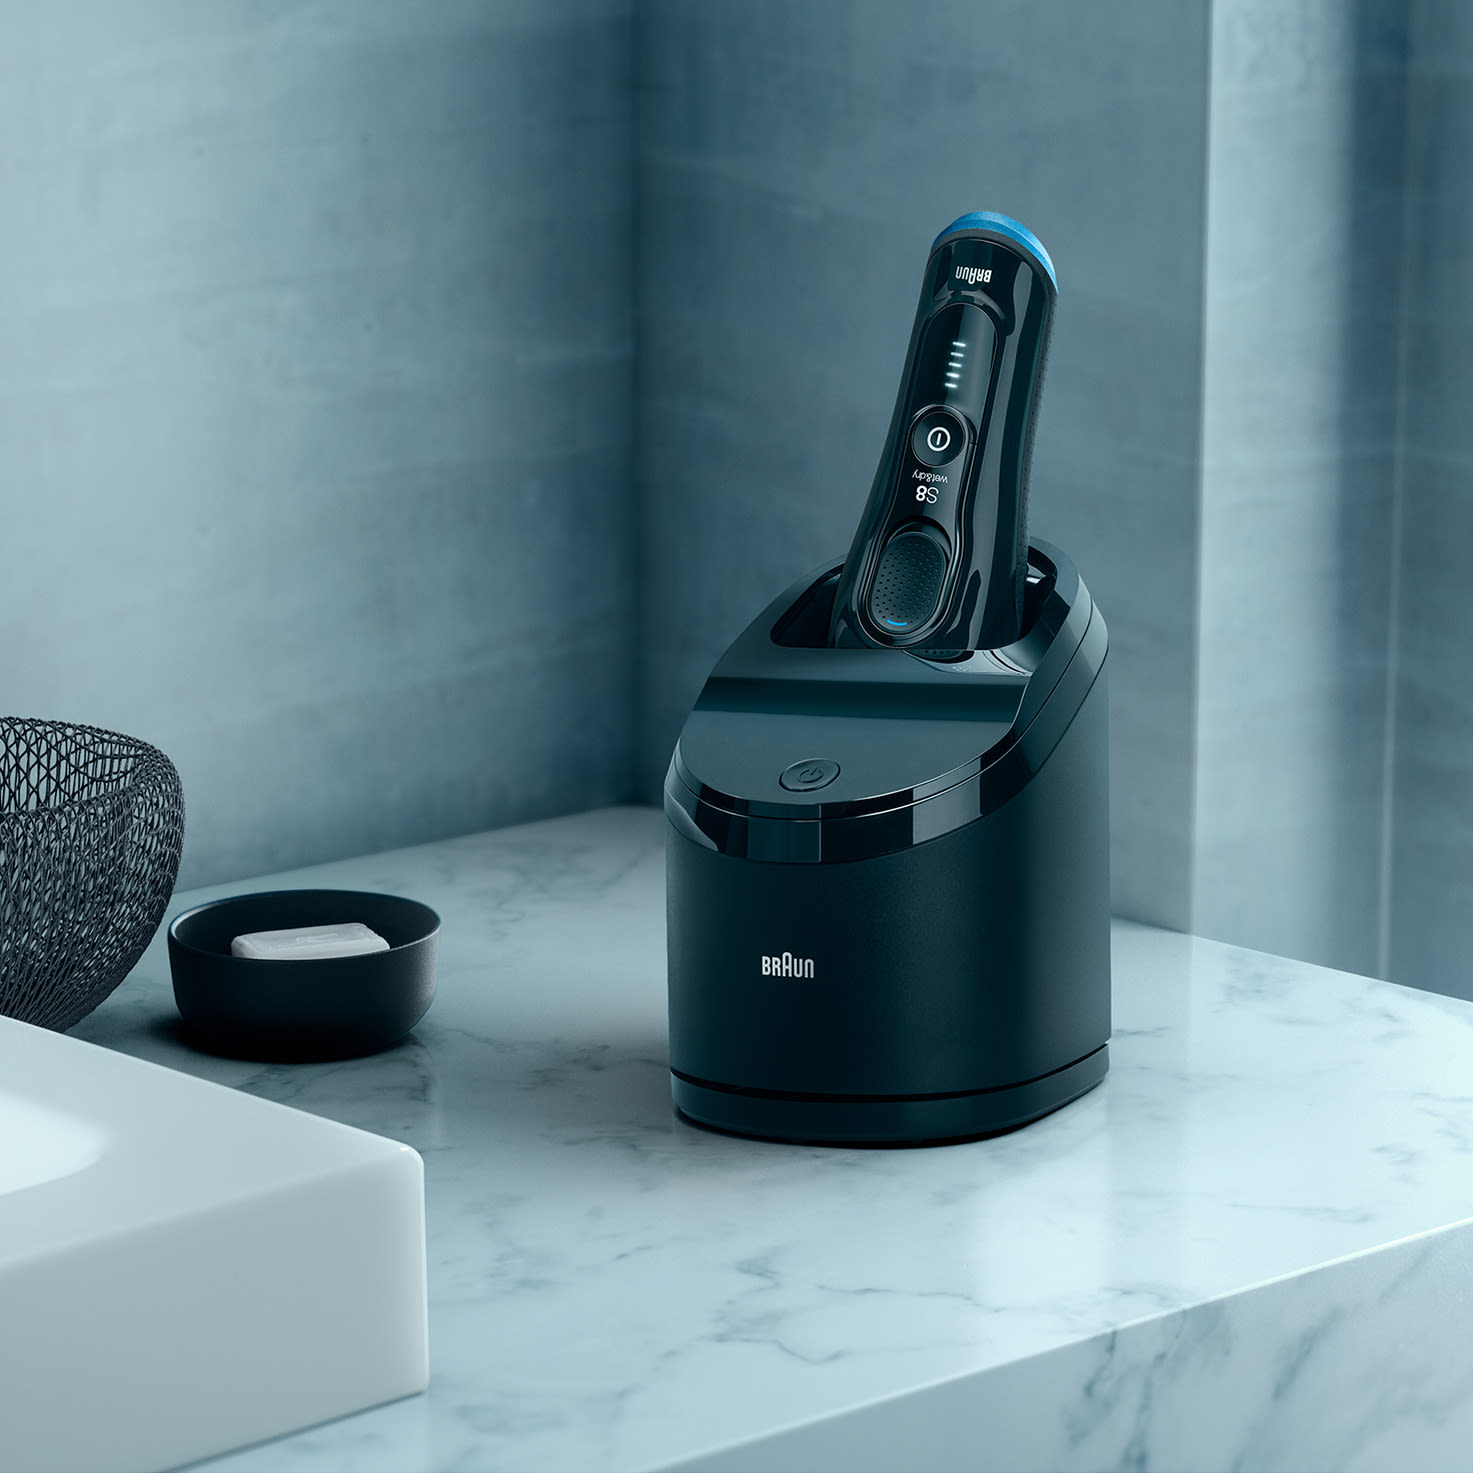 Series 8 8365cc shaver in Clean & Charge station